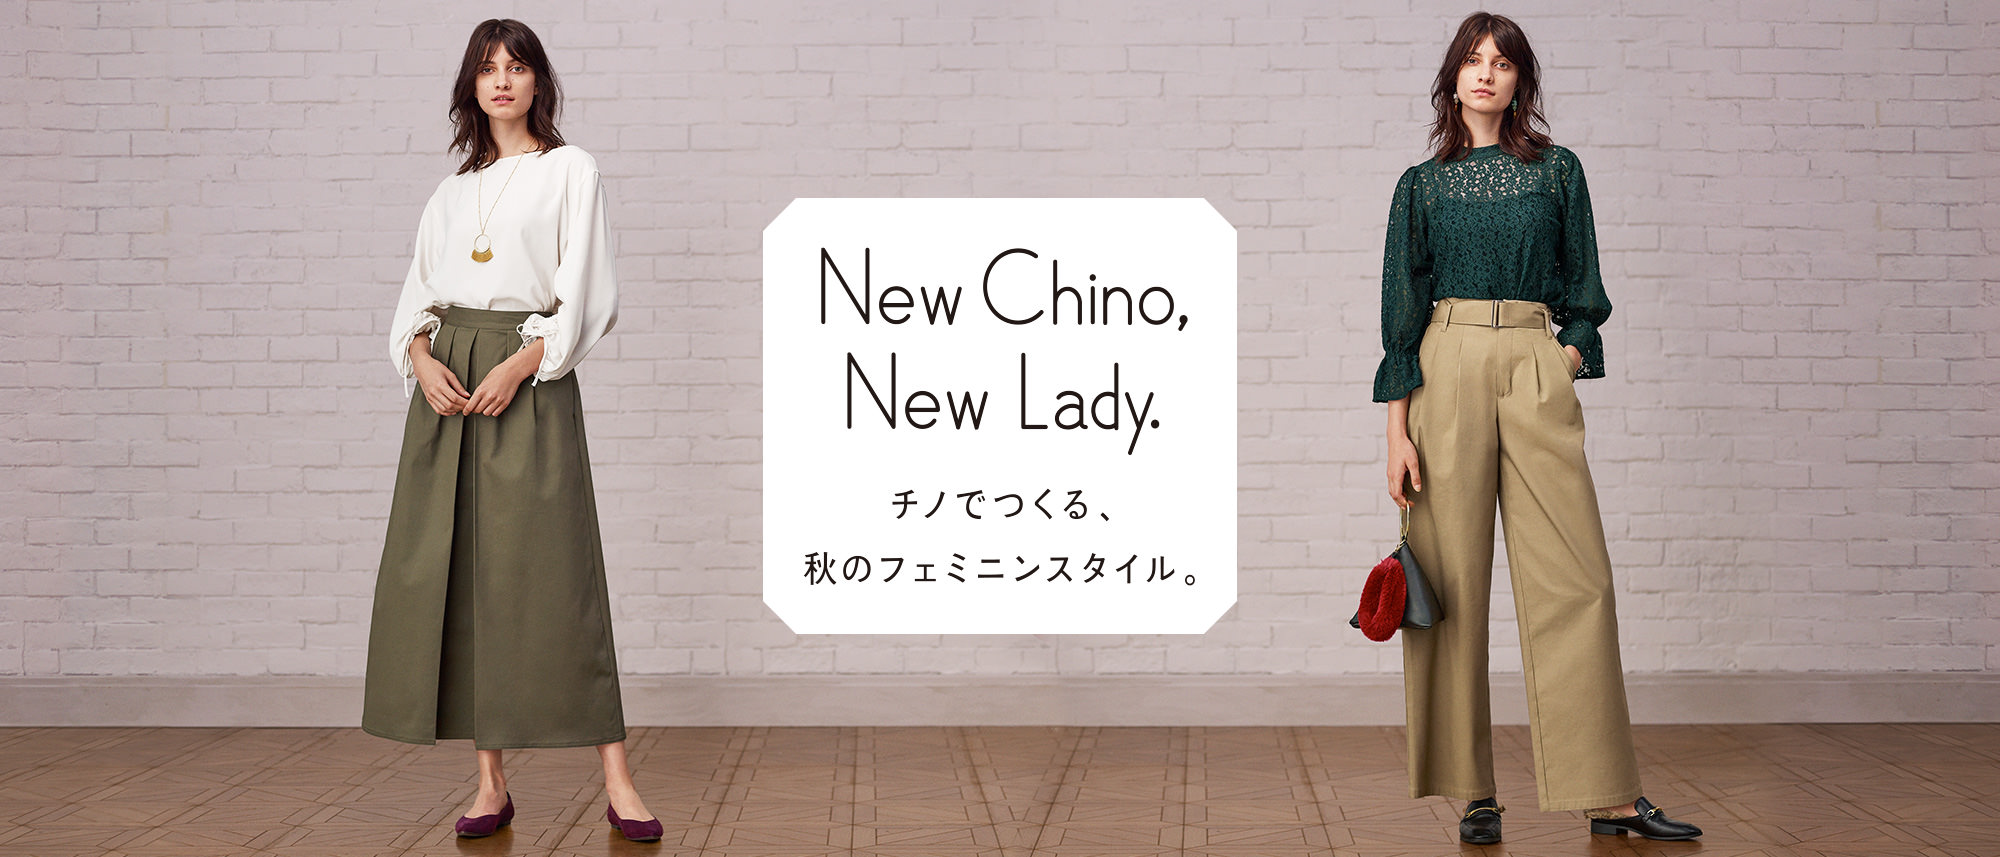 New Chino, New Lady.